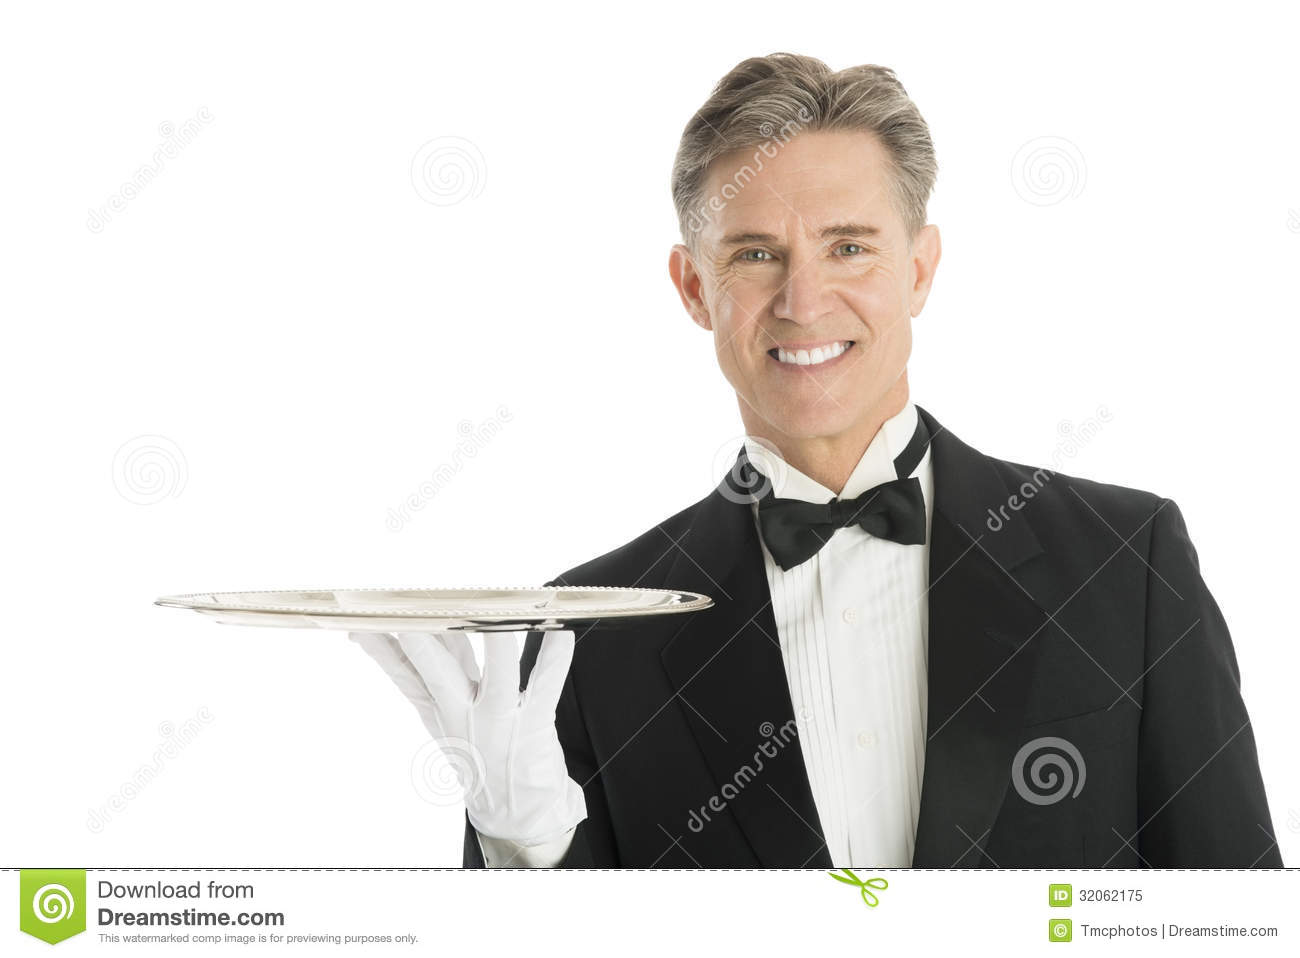 January Jones Hot Photos Sexy Pics Instagram furthermore Royalty Free Stock Photography Young Serious Waiter Holding Hamburger Plate Full Length Portrait Isolated White Background Image34742497 moreover 76058 intersect 1 also Charlotte Mckinney Guess Lingerie n 7061450 besides 99179. on black butler thumbs up